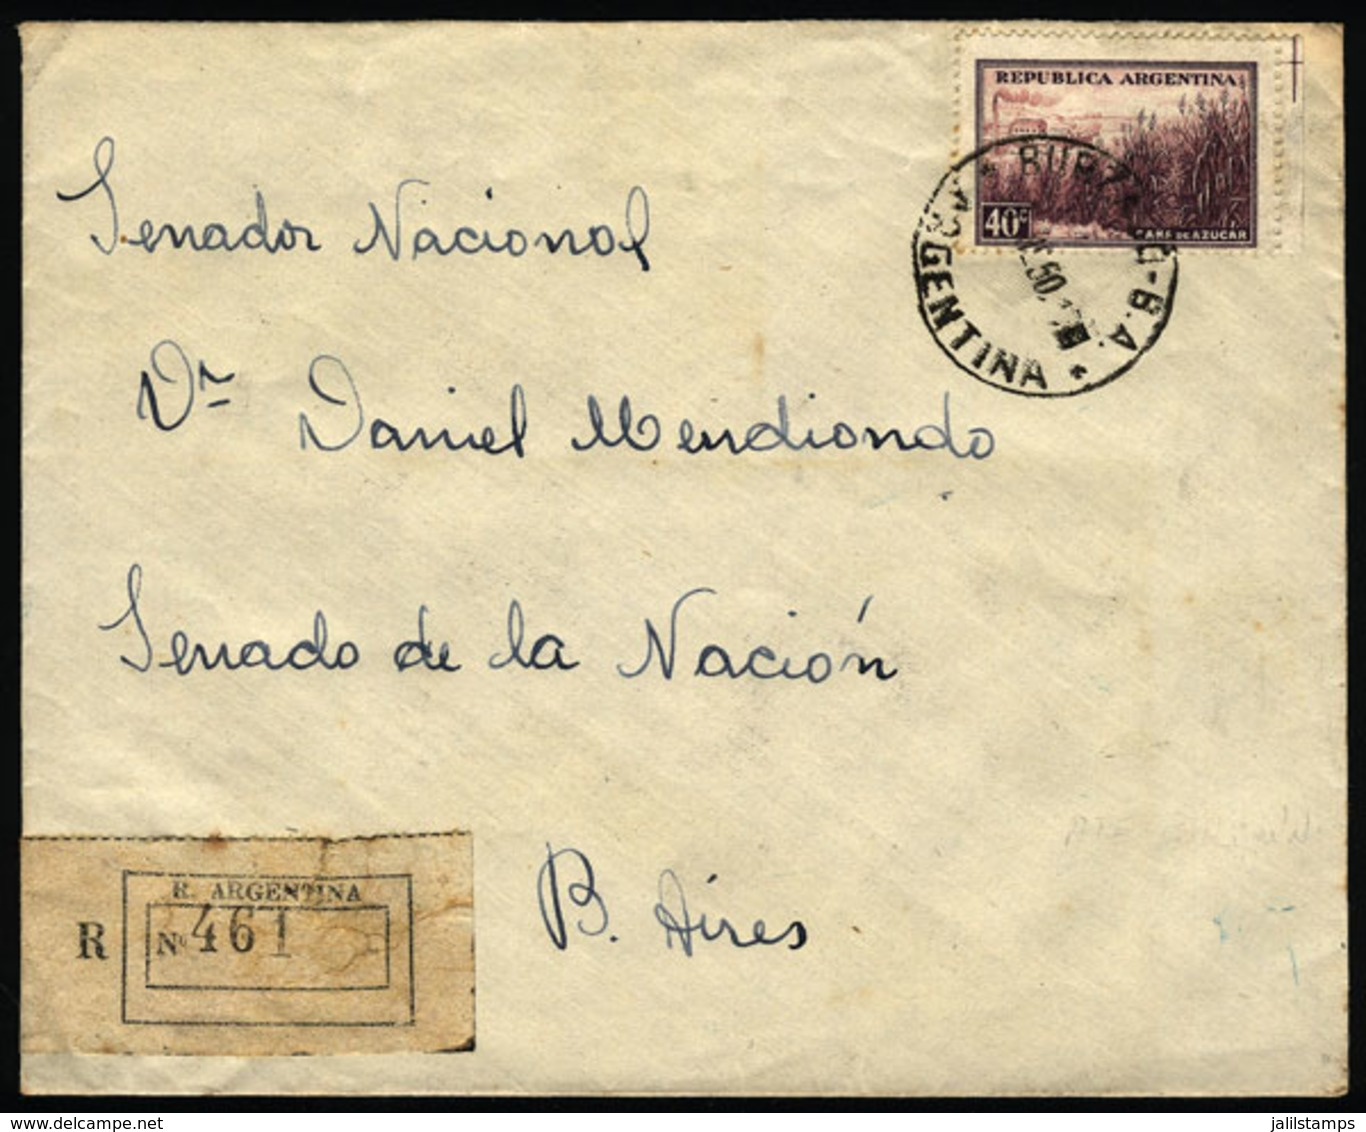 """ARGENTINA: Cover Sent From """"BURZACO"""" (Buenos Aires) To Buenos Aires City In JA/1950, VF Quality"""" - Argentina"""